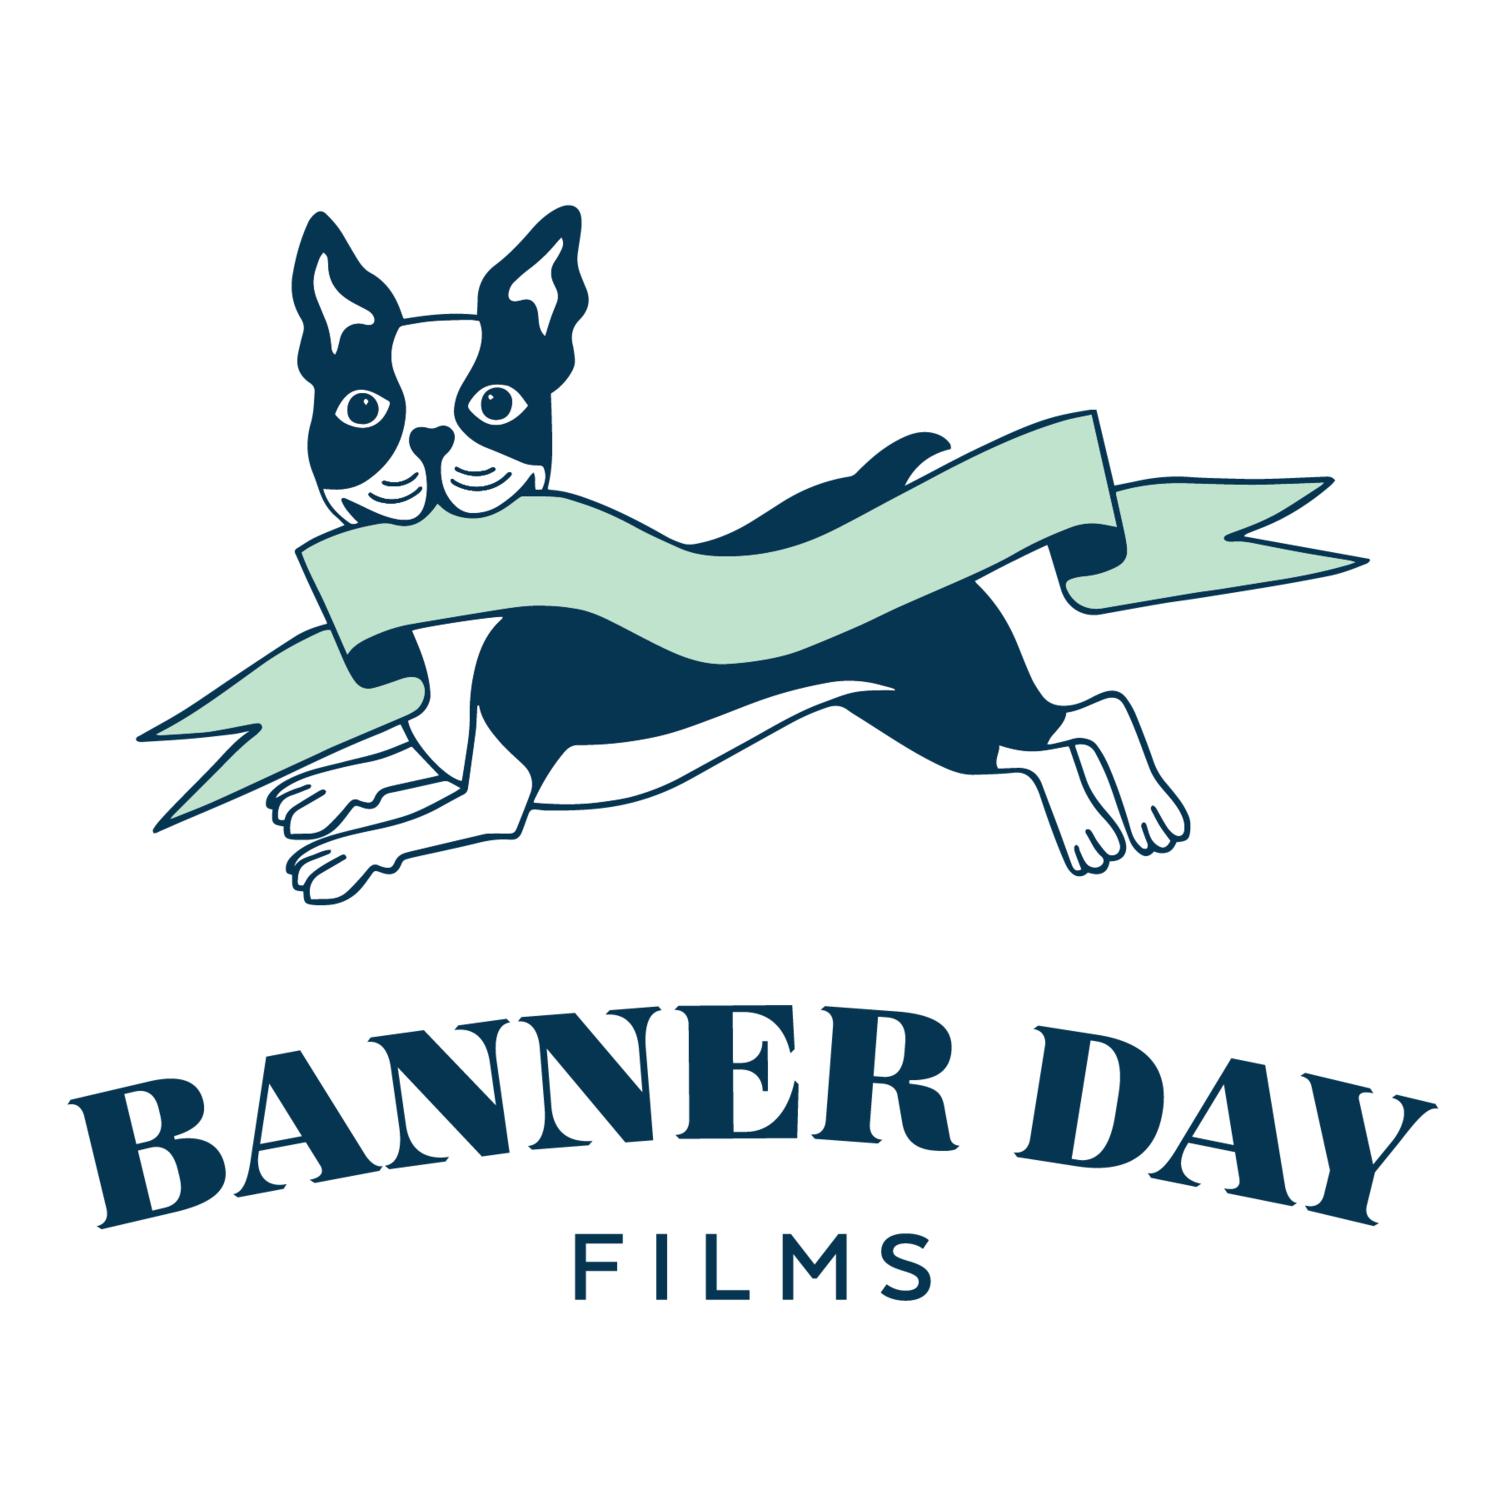 Banner Day Films | Marketing videos... with heart.